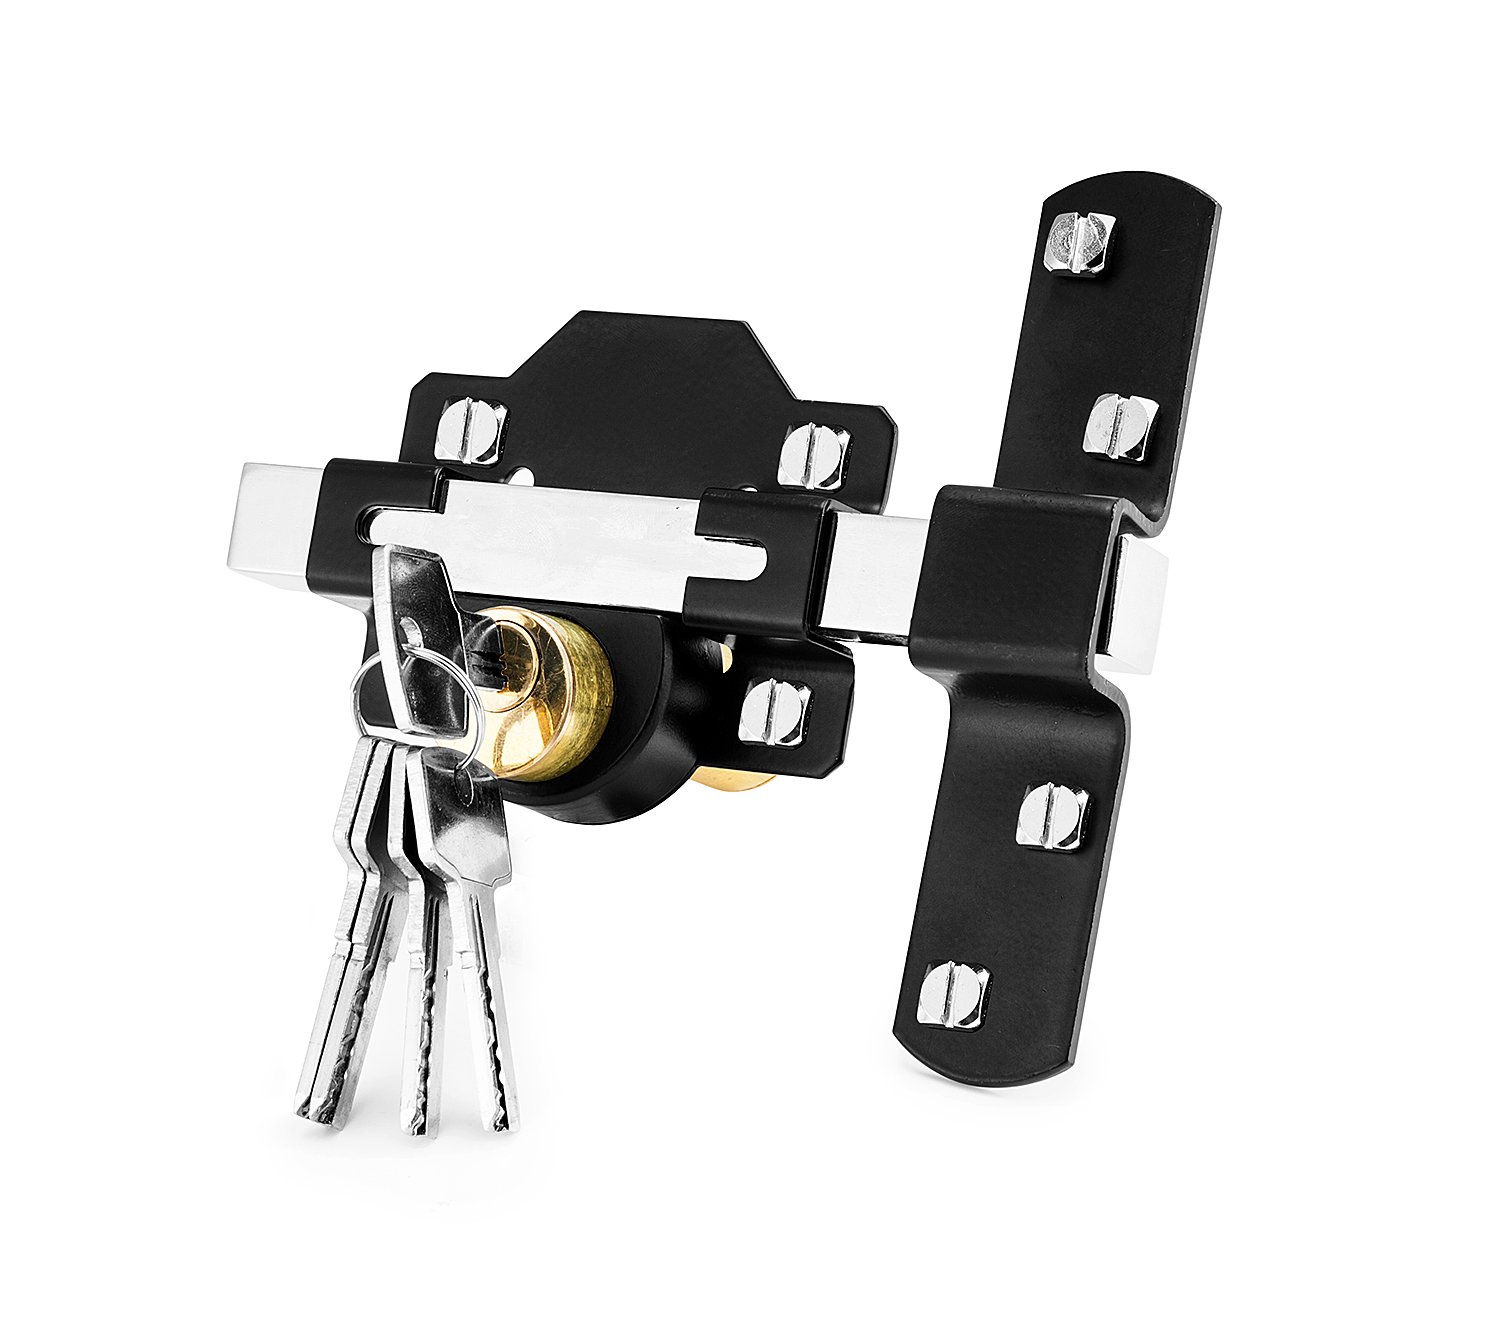 Concise Home 50mm Double Long Throw Gate Lock 5 Keys Garden Locking Both Sides CH-0005